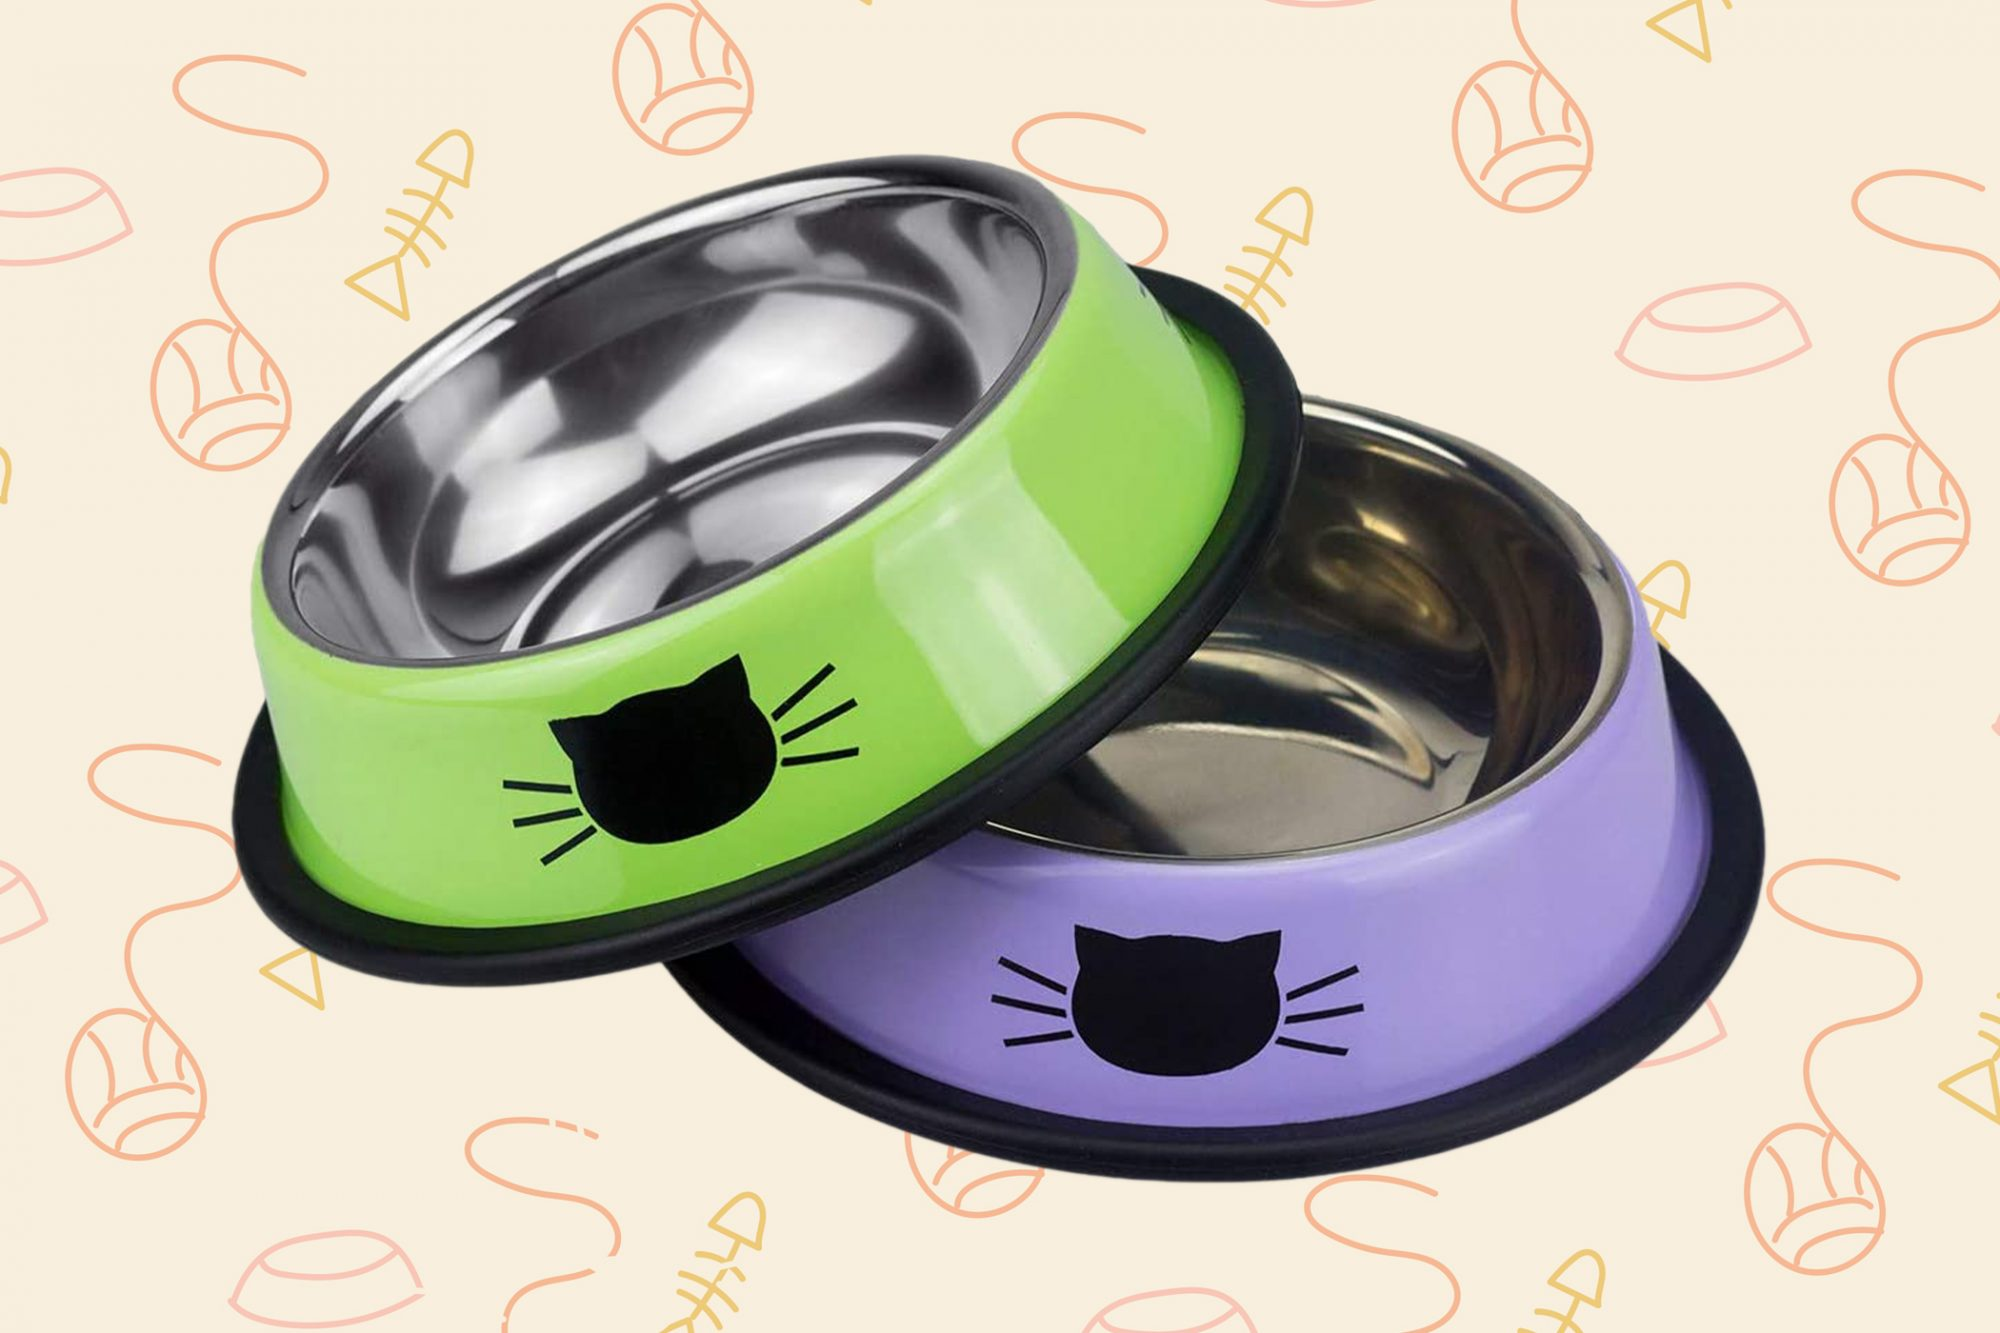 Lime green and violet cat bowl pairs with cat decals